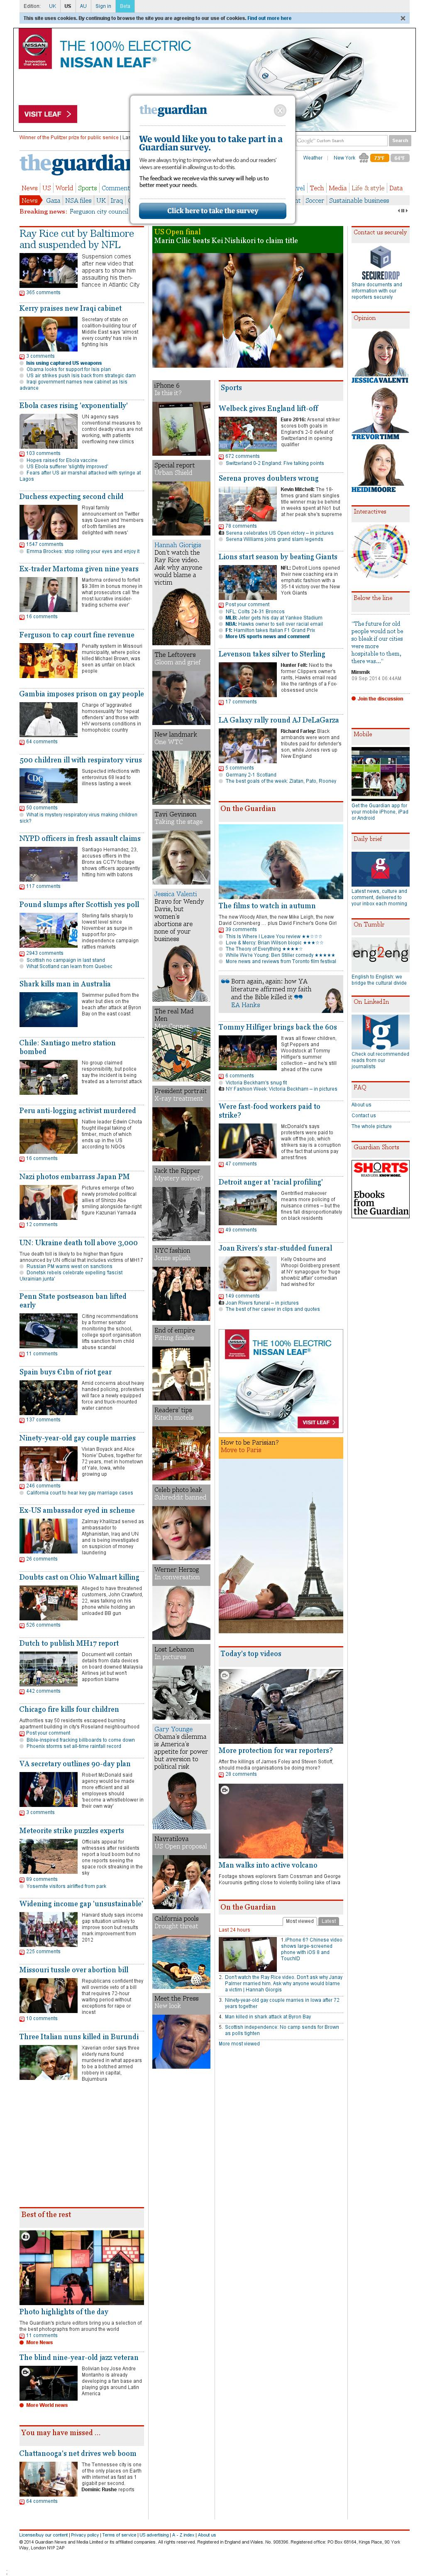 The Guardian at Tuesday Sept. 9, 2014, 7:07 a.m. UTC